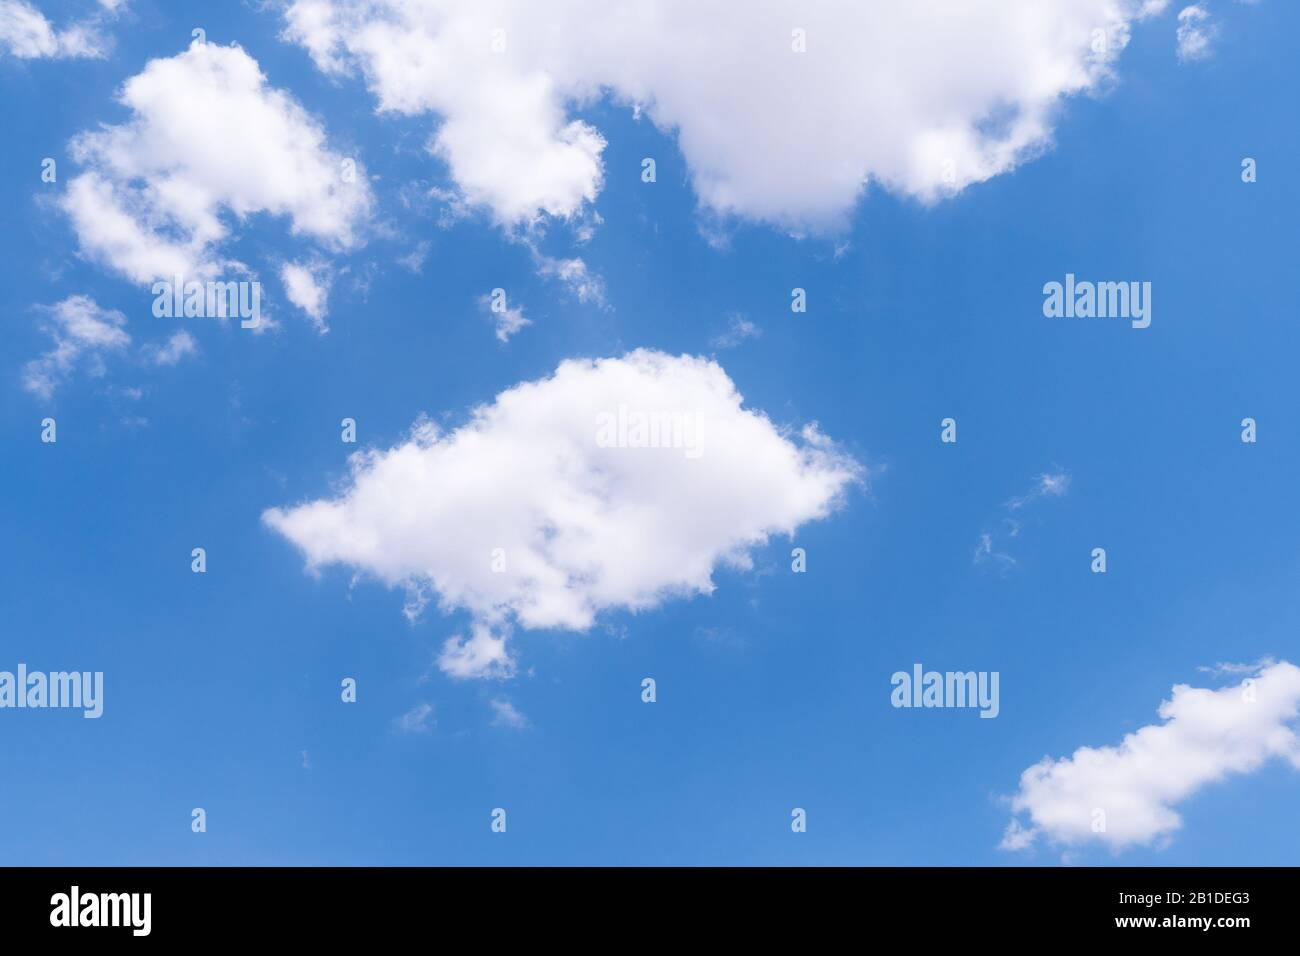 The Blue Sky With Moving White Clouds The Most Of Clouds Are Beautiful Color And Shade Suitable For Use As Background Image Stock Photo Alamy